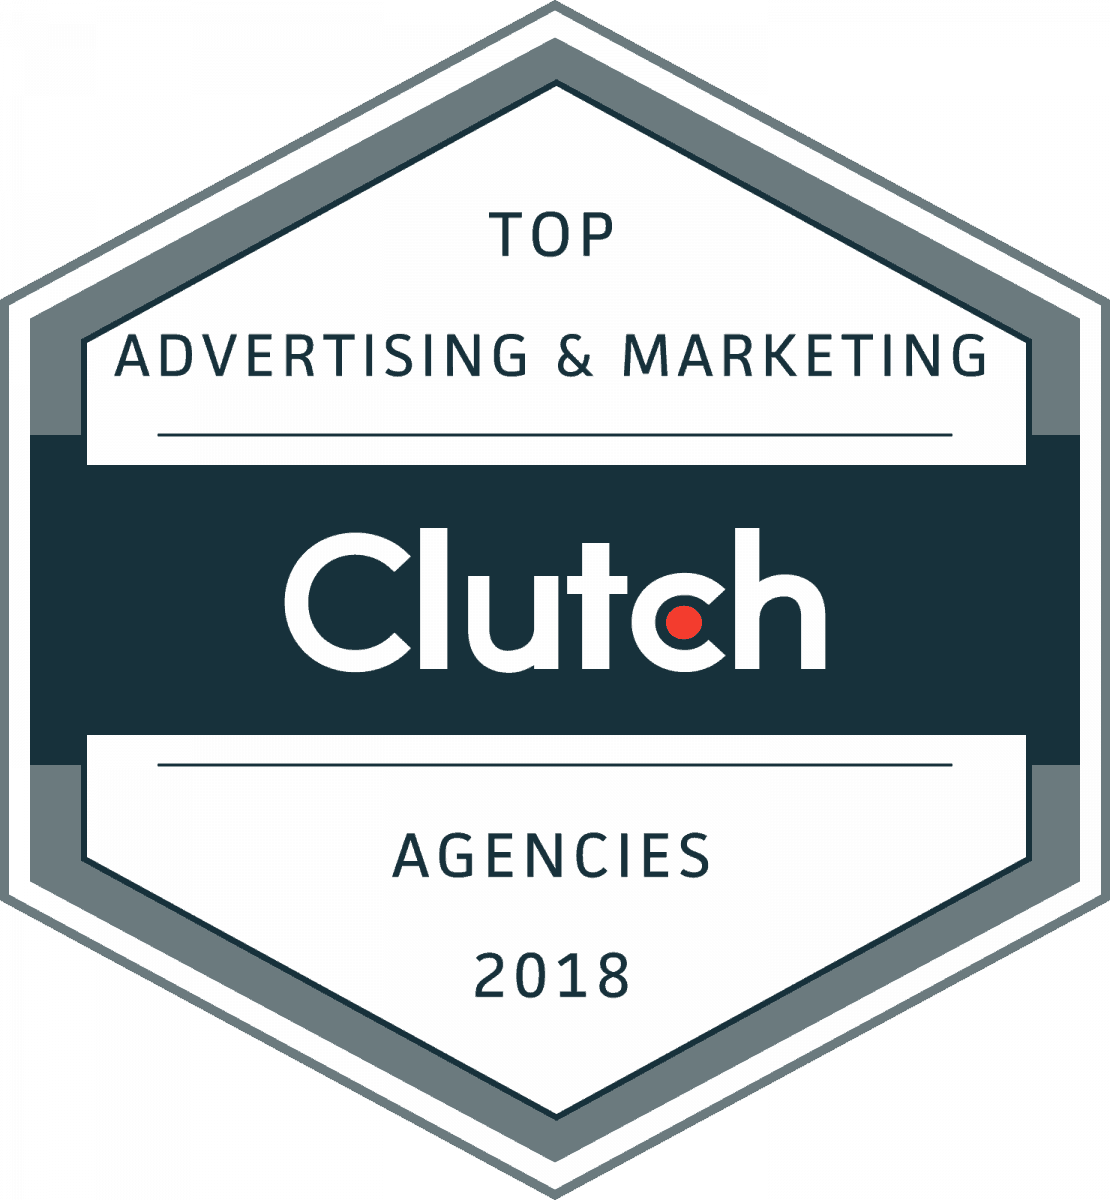 Clutch Top Advertising and Marketing Agency Award